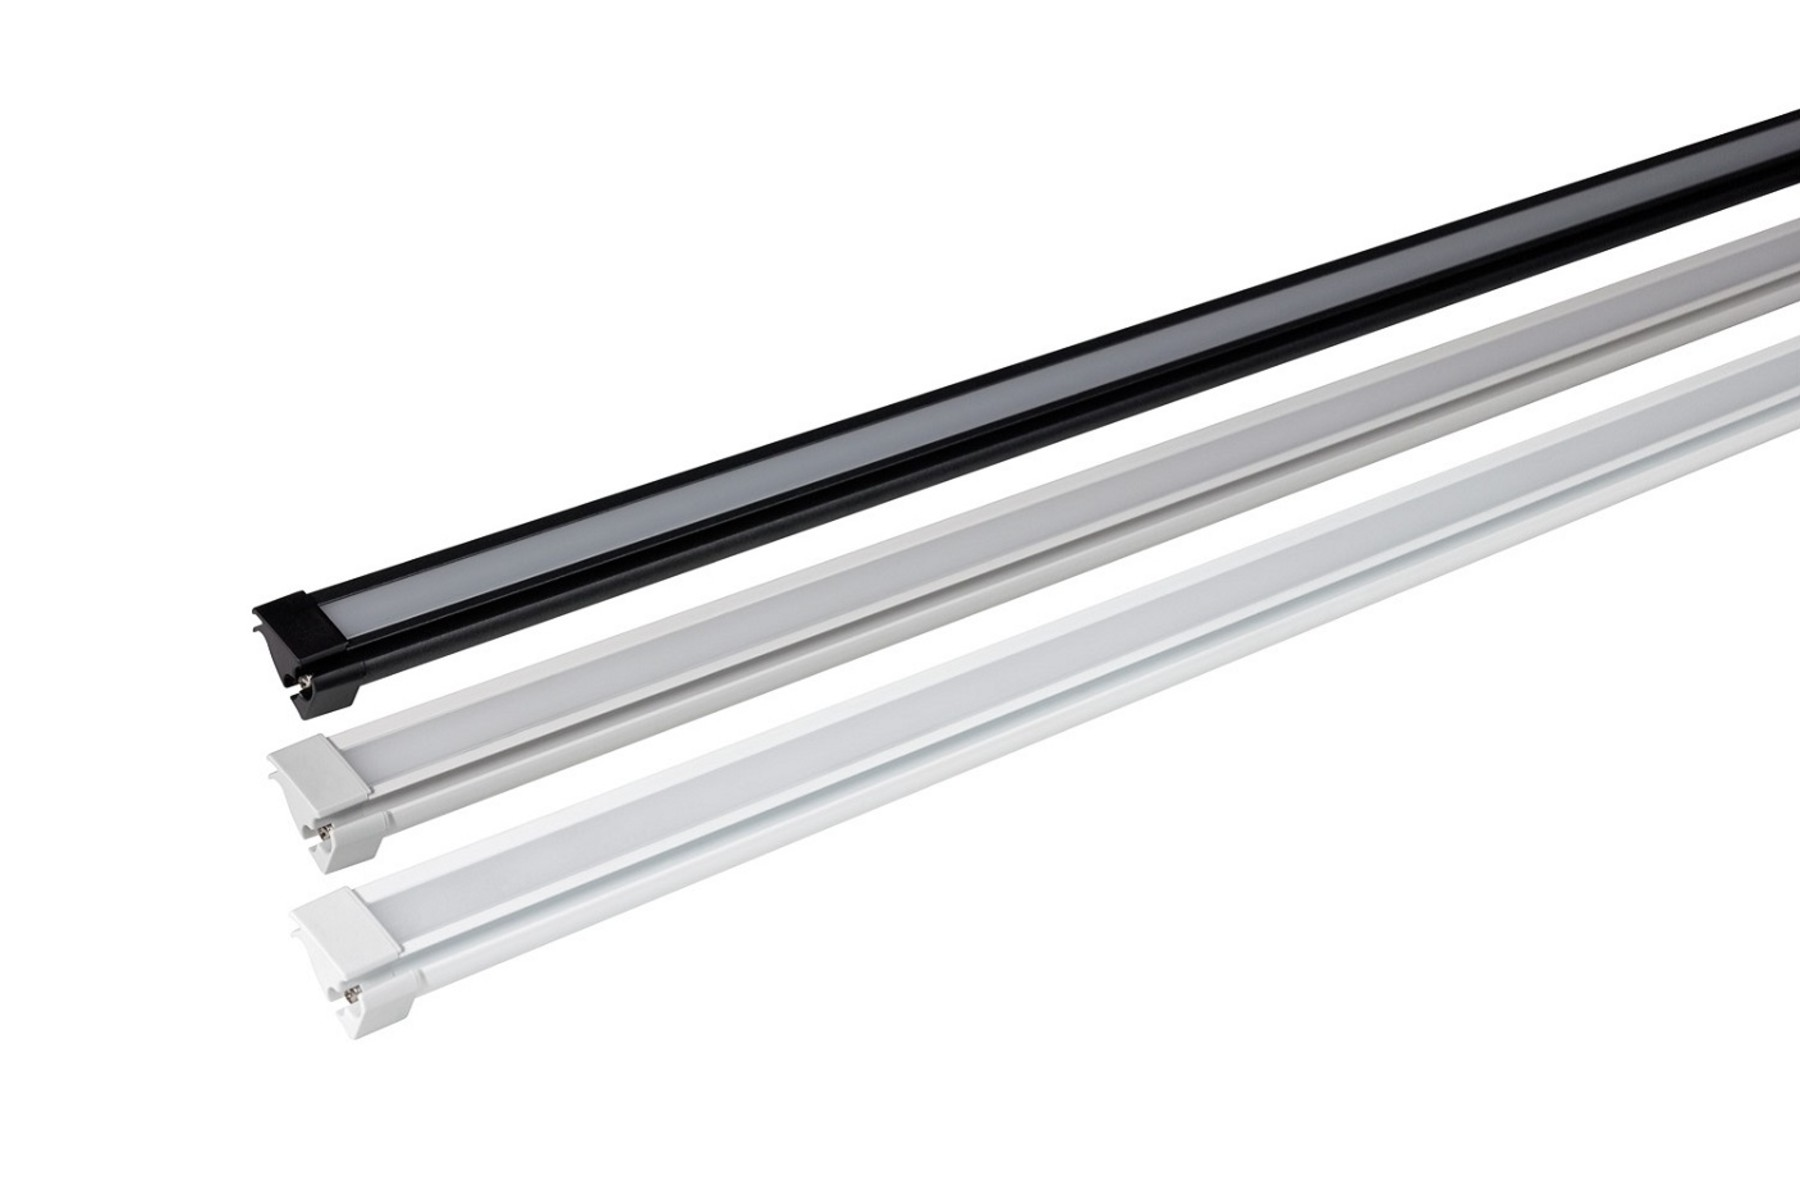 Thule Tent LED Mounting Rail for TO 5200 awning